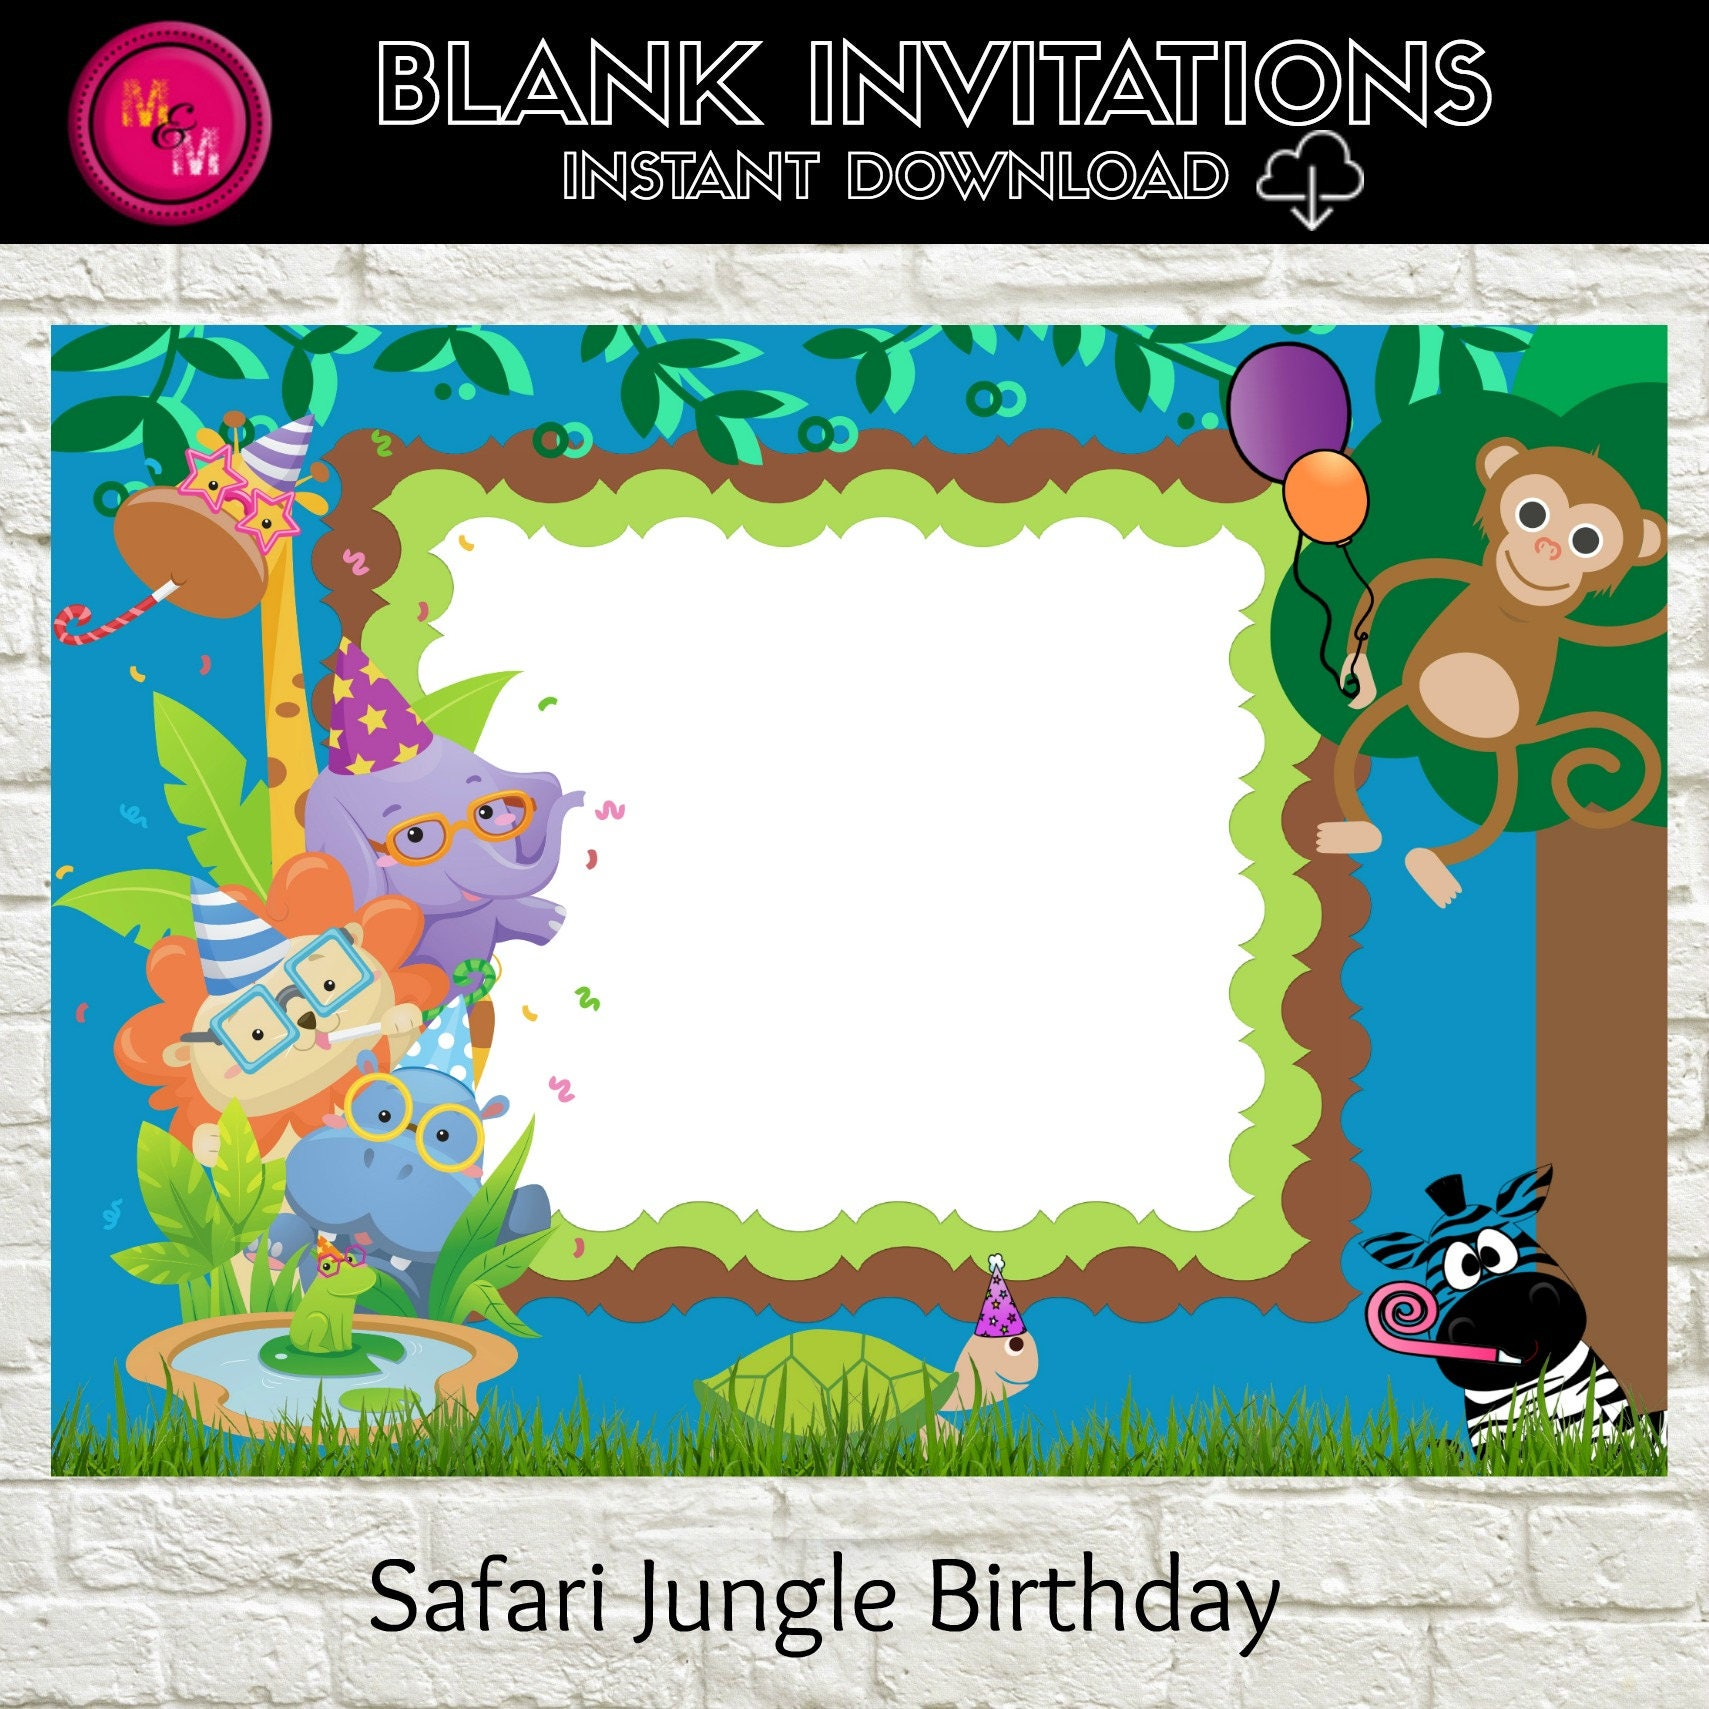 Elmo Pool Party Invitation BlankInstant Download Template – Free Printable Elmo Birthday Invitations